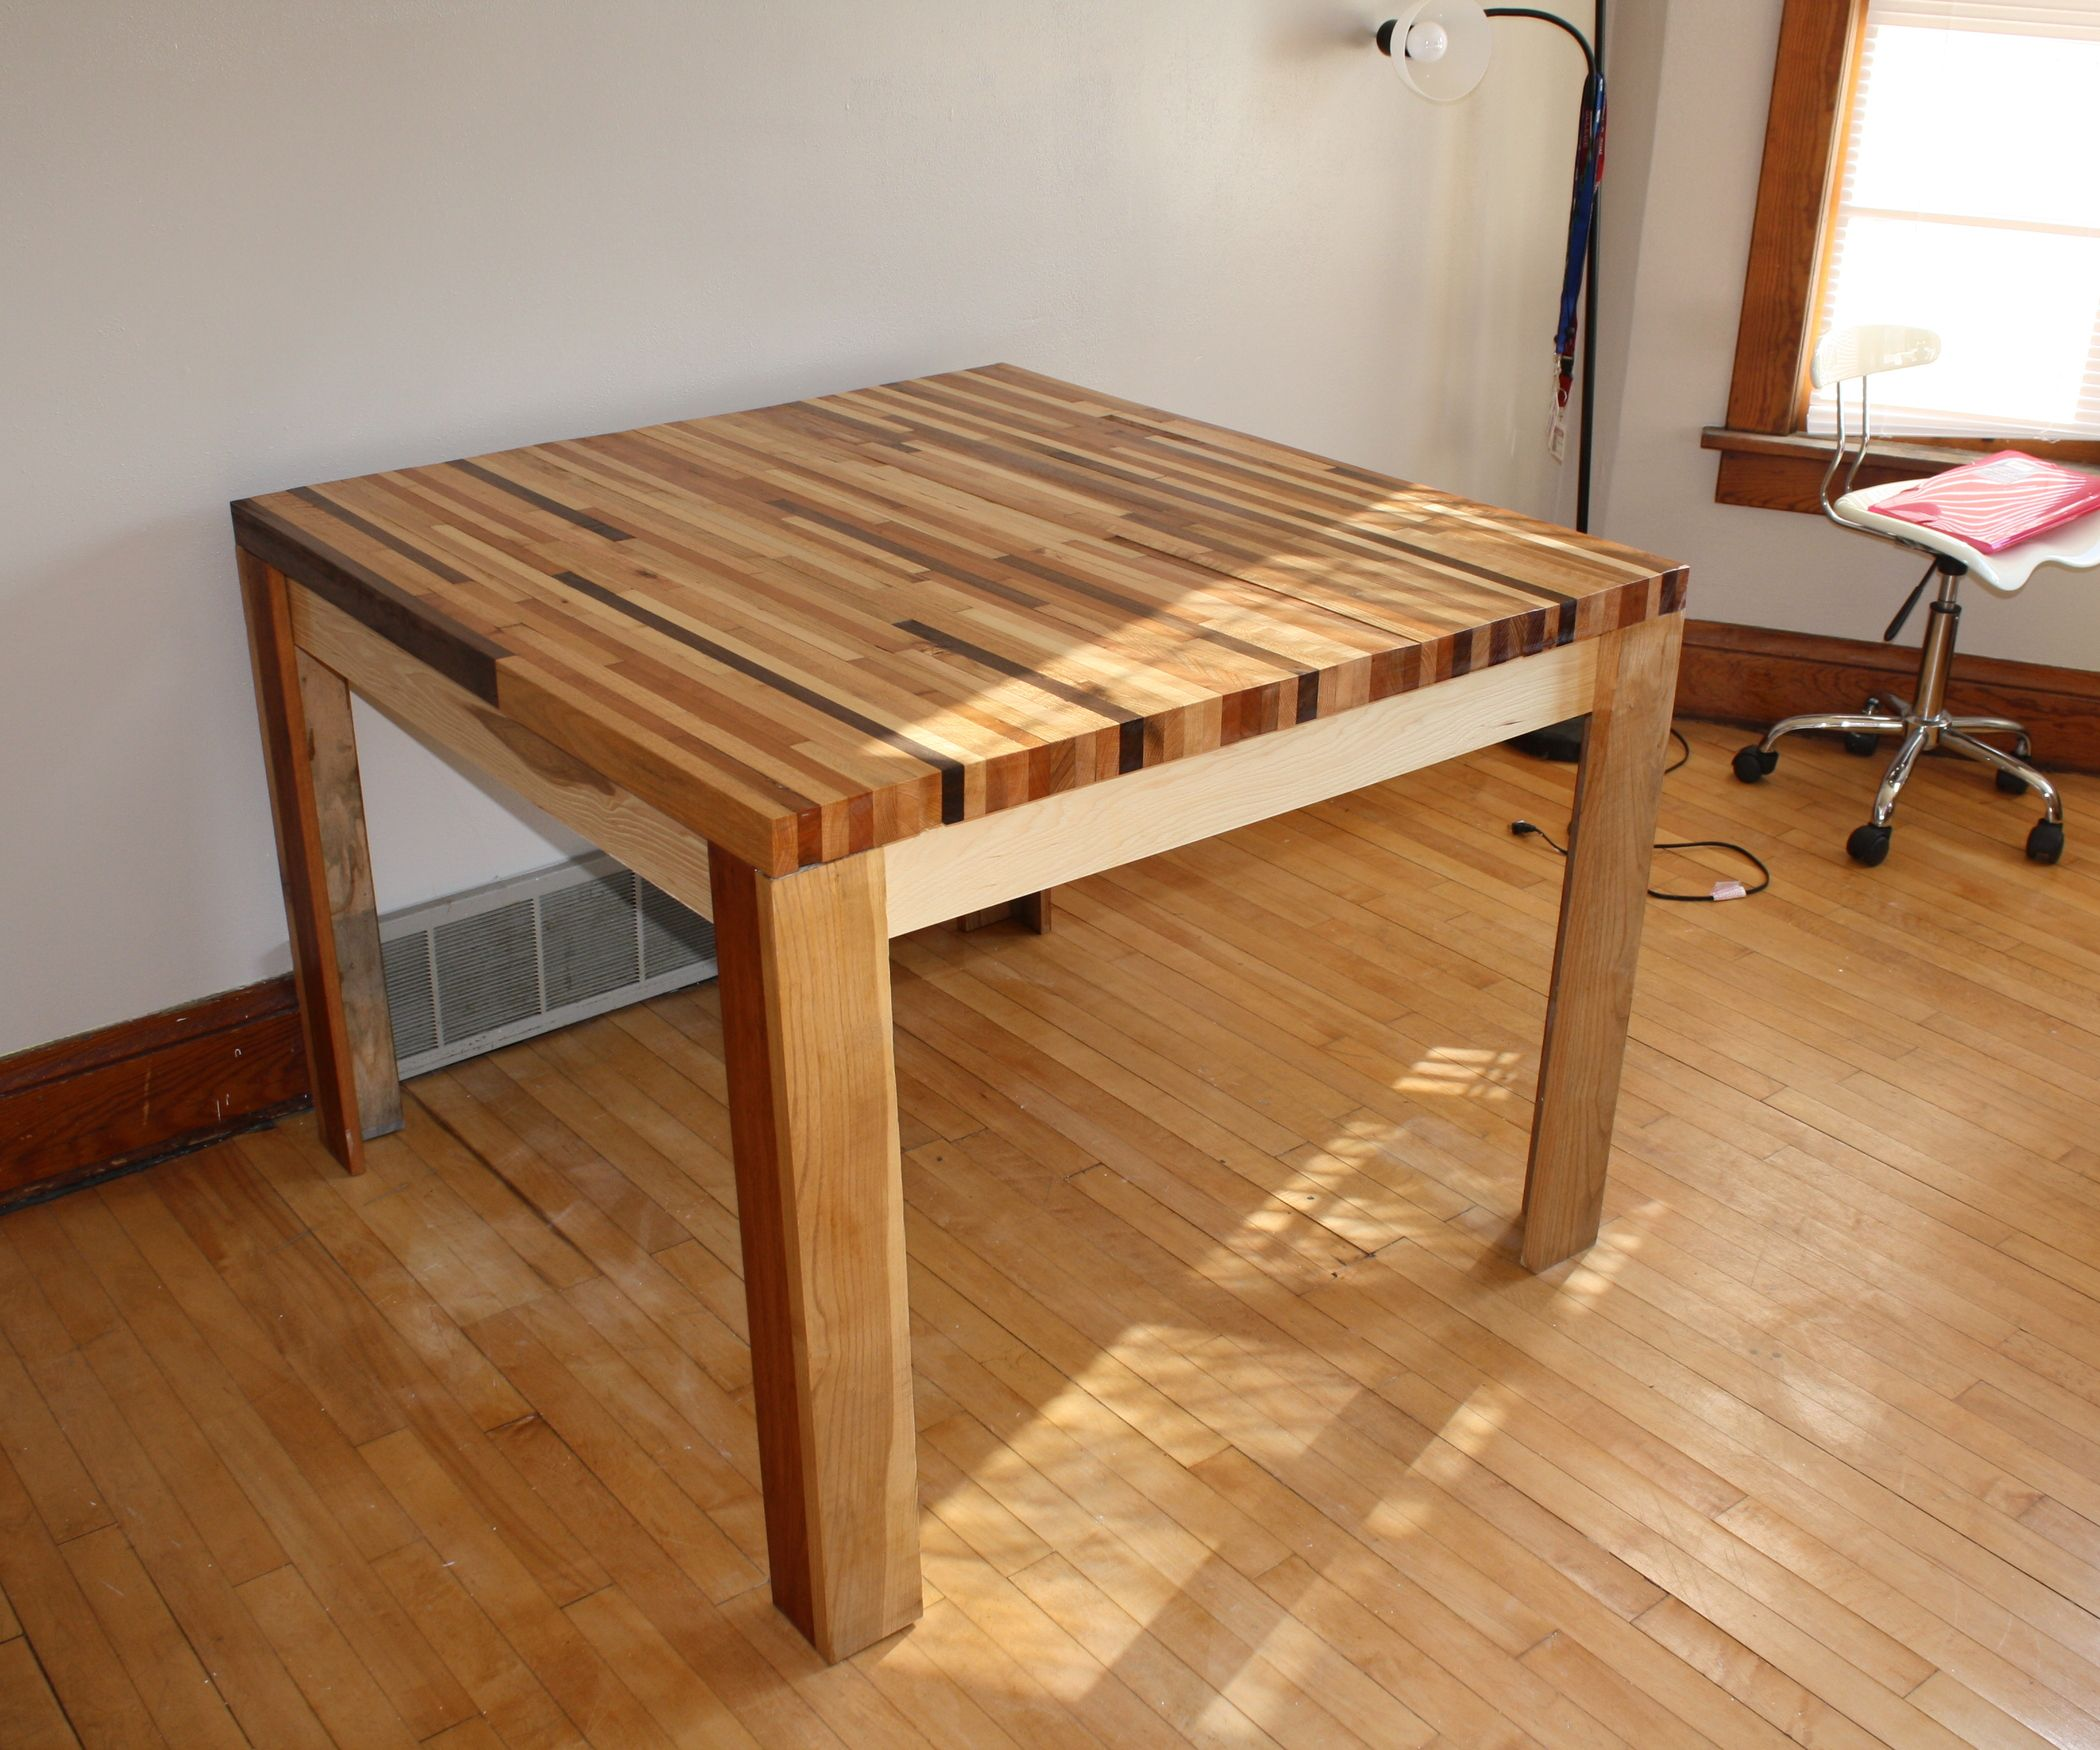 Butcher Block Kitchen Tables And Chairs: Butcher Block Dining Table